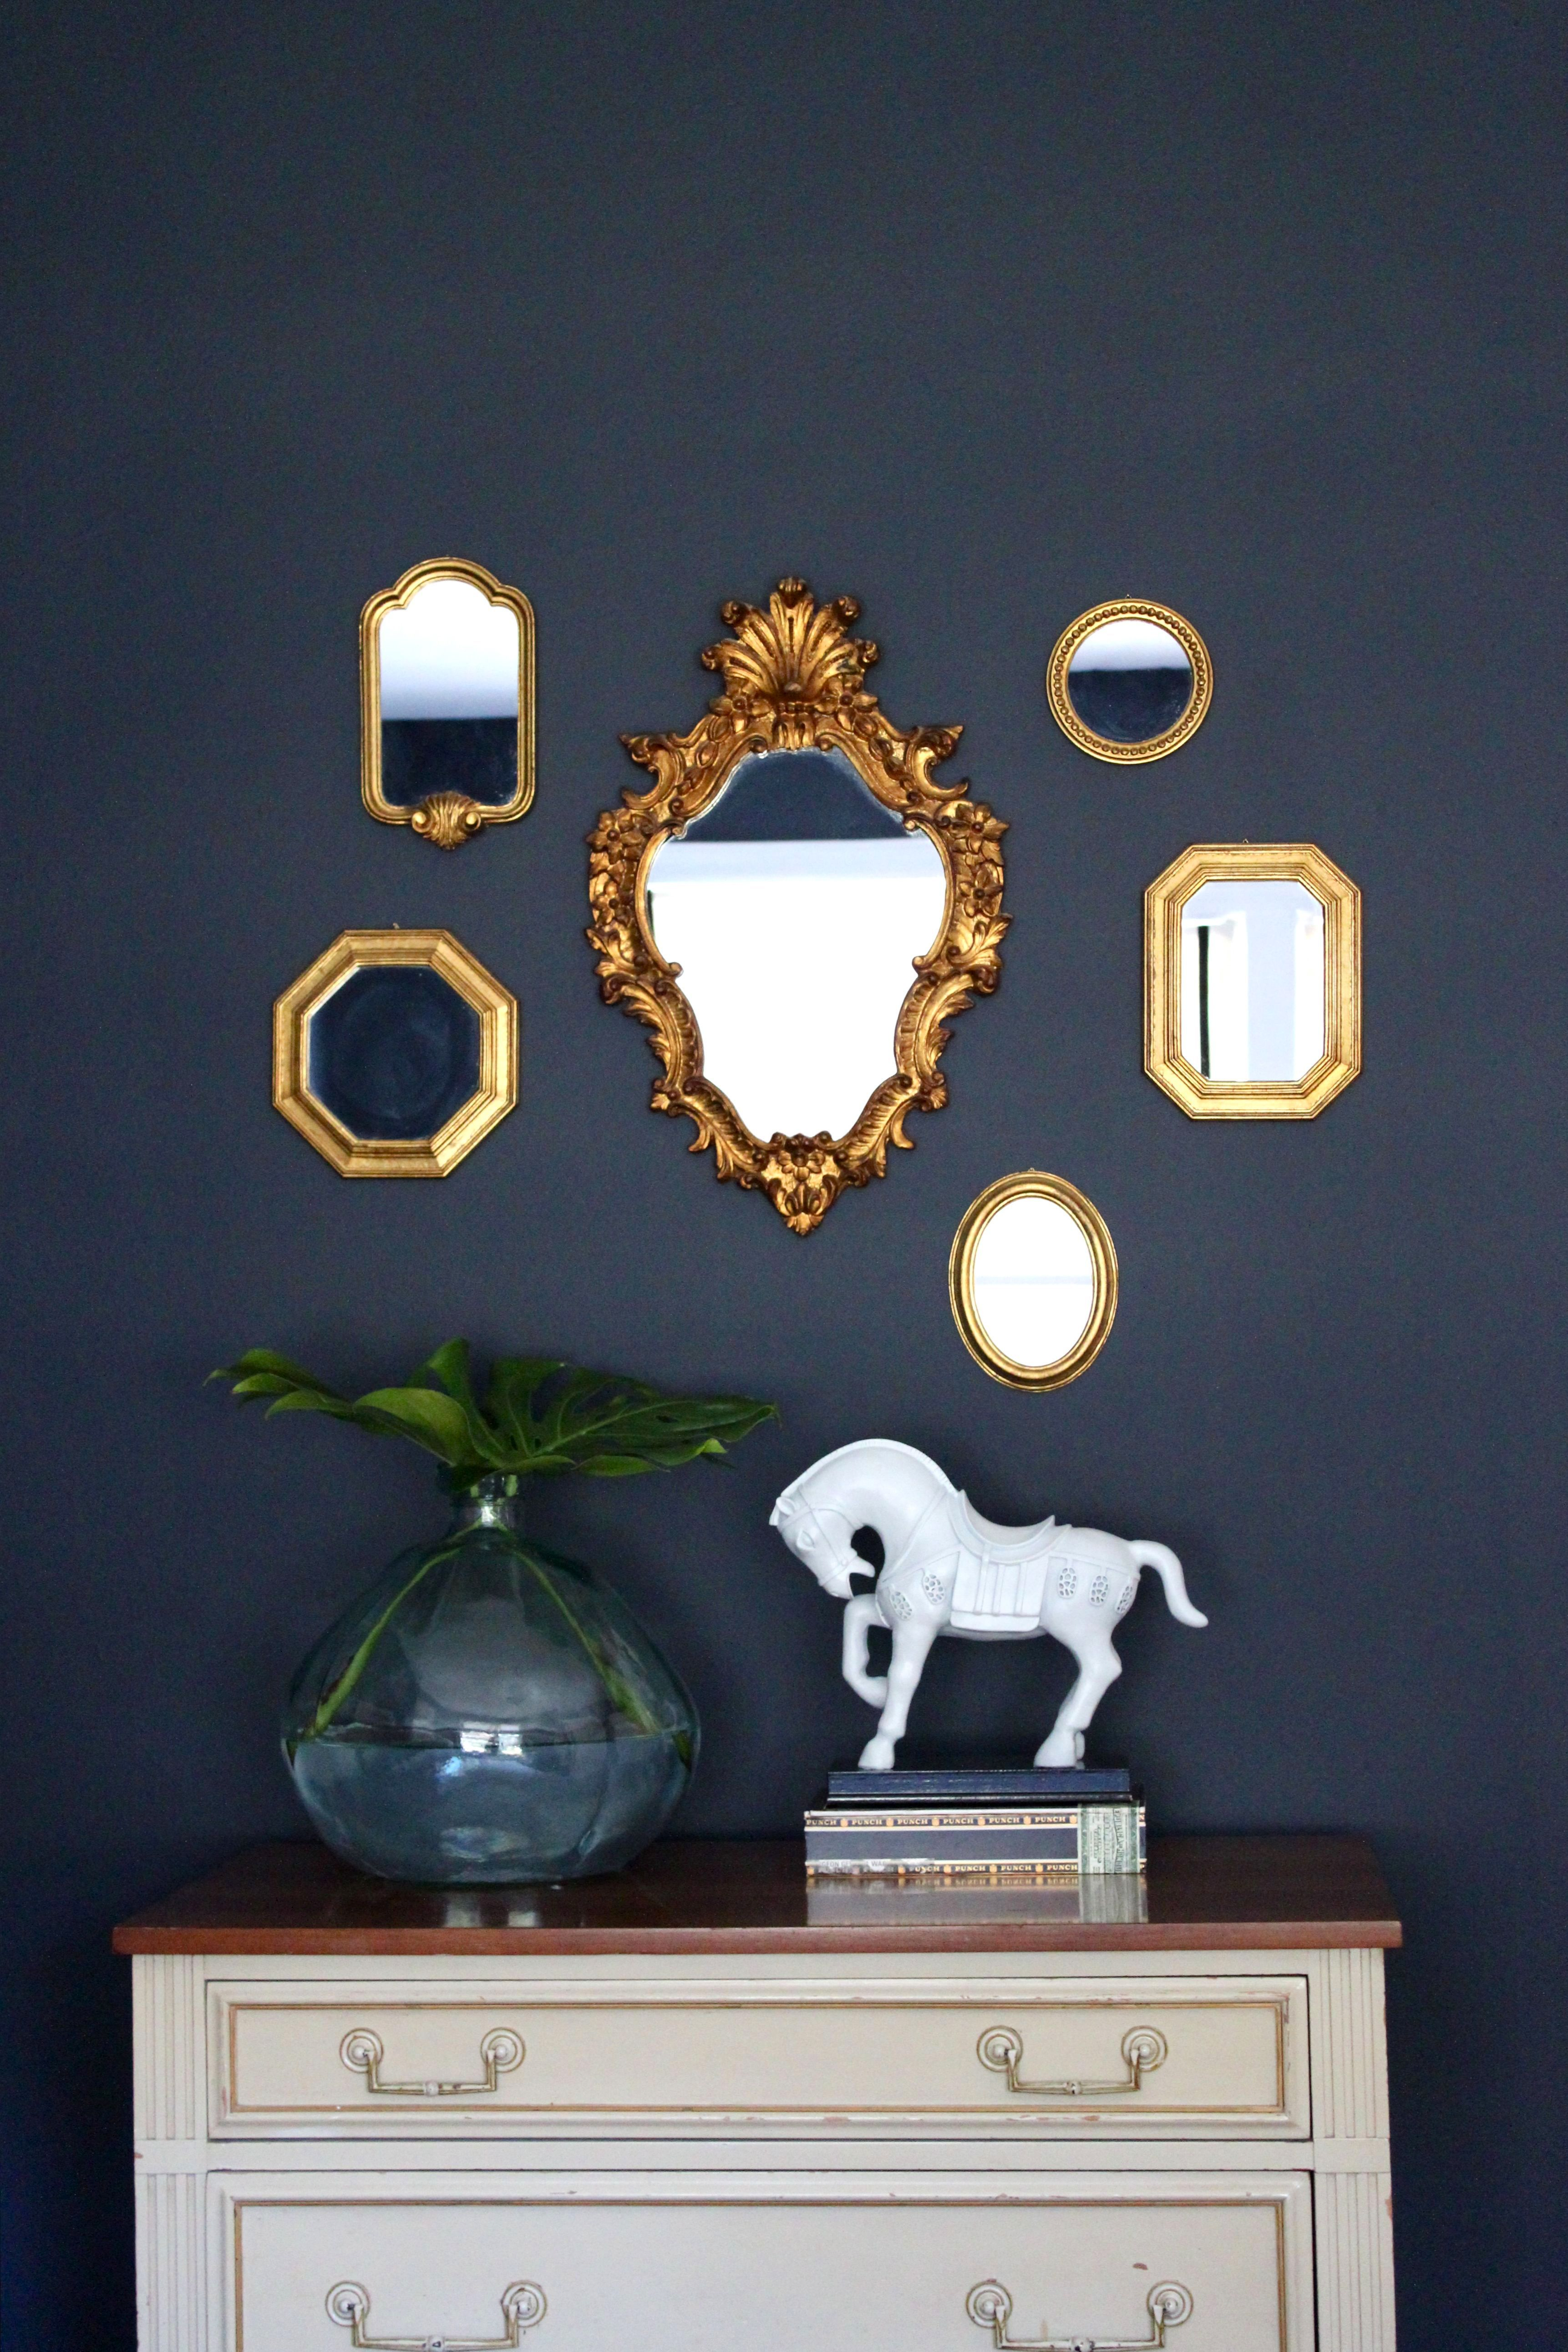 This Mirror Collection Idea Is Done So Often But Not Always Well As Fine Example The Wall Colour Just Takes Whole Look To Next Level